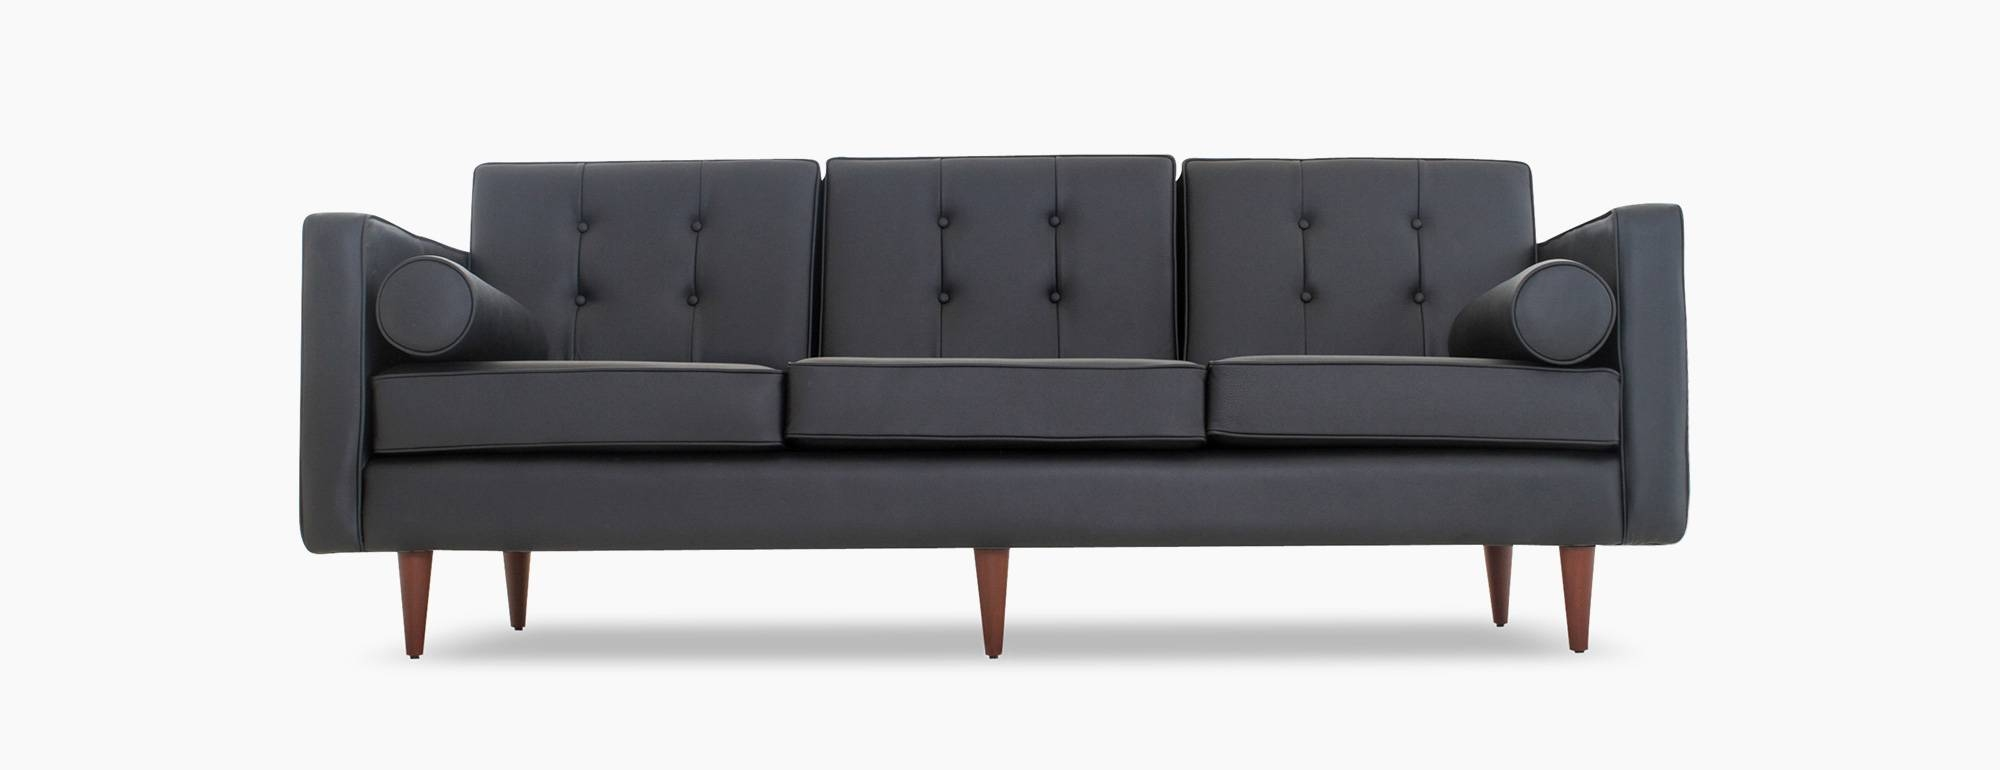 Braxton Leather Sofa | Joybird intended for Braxton Sofa (Image 7 of 30)